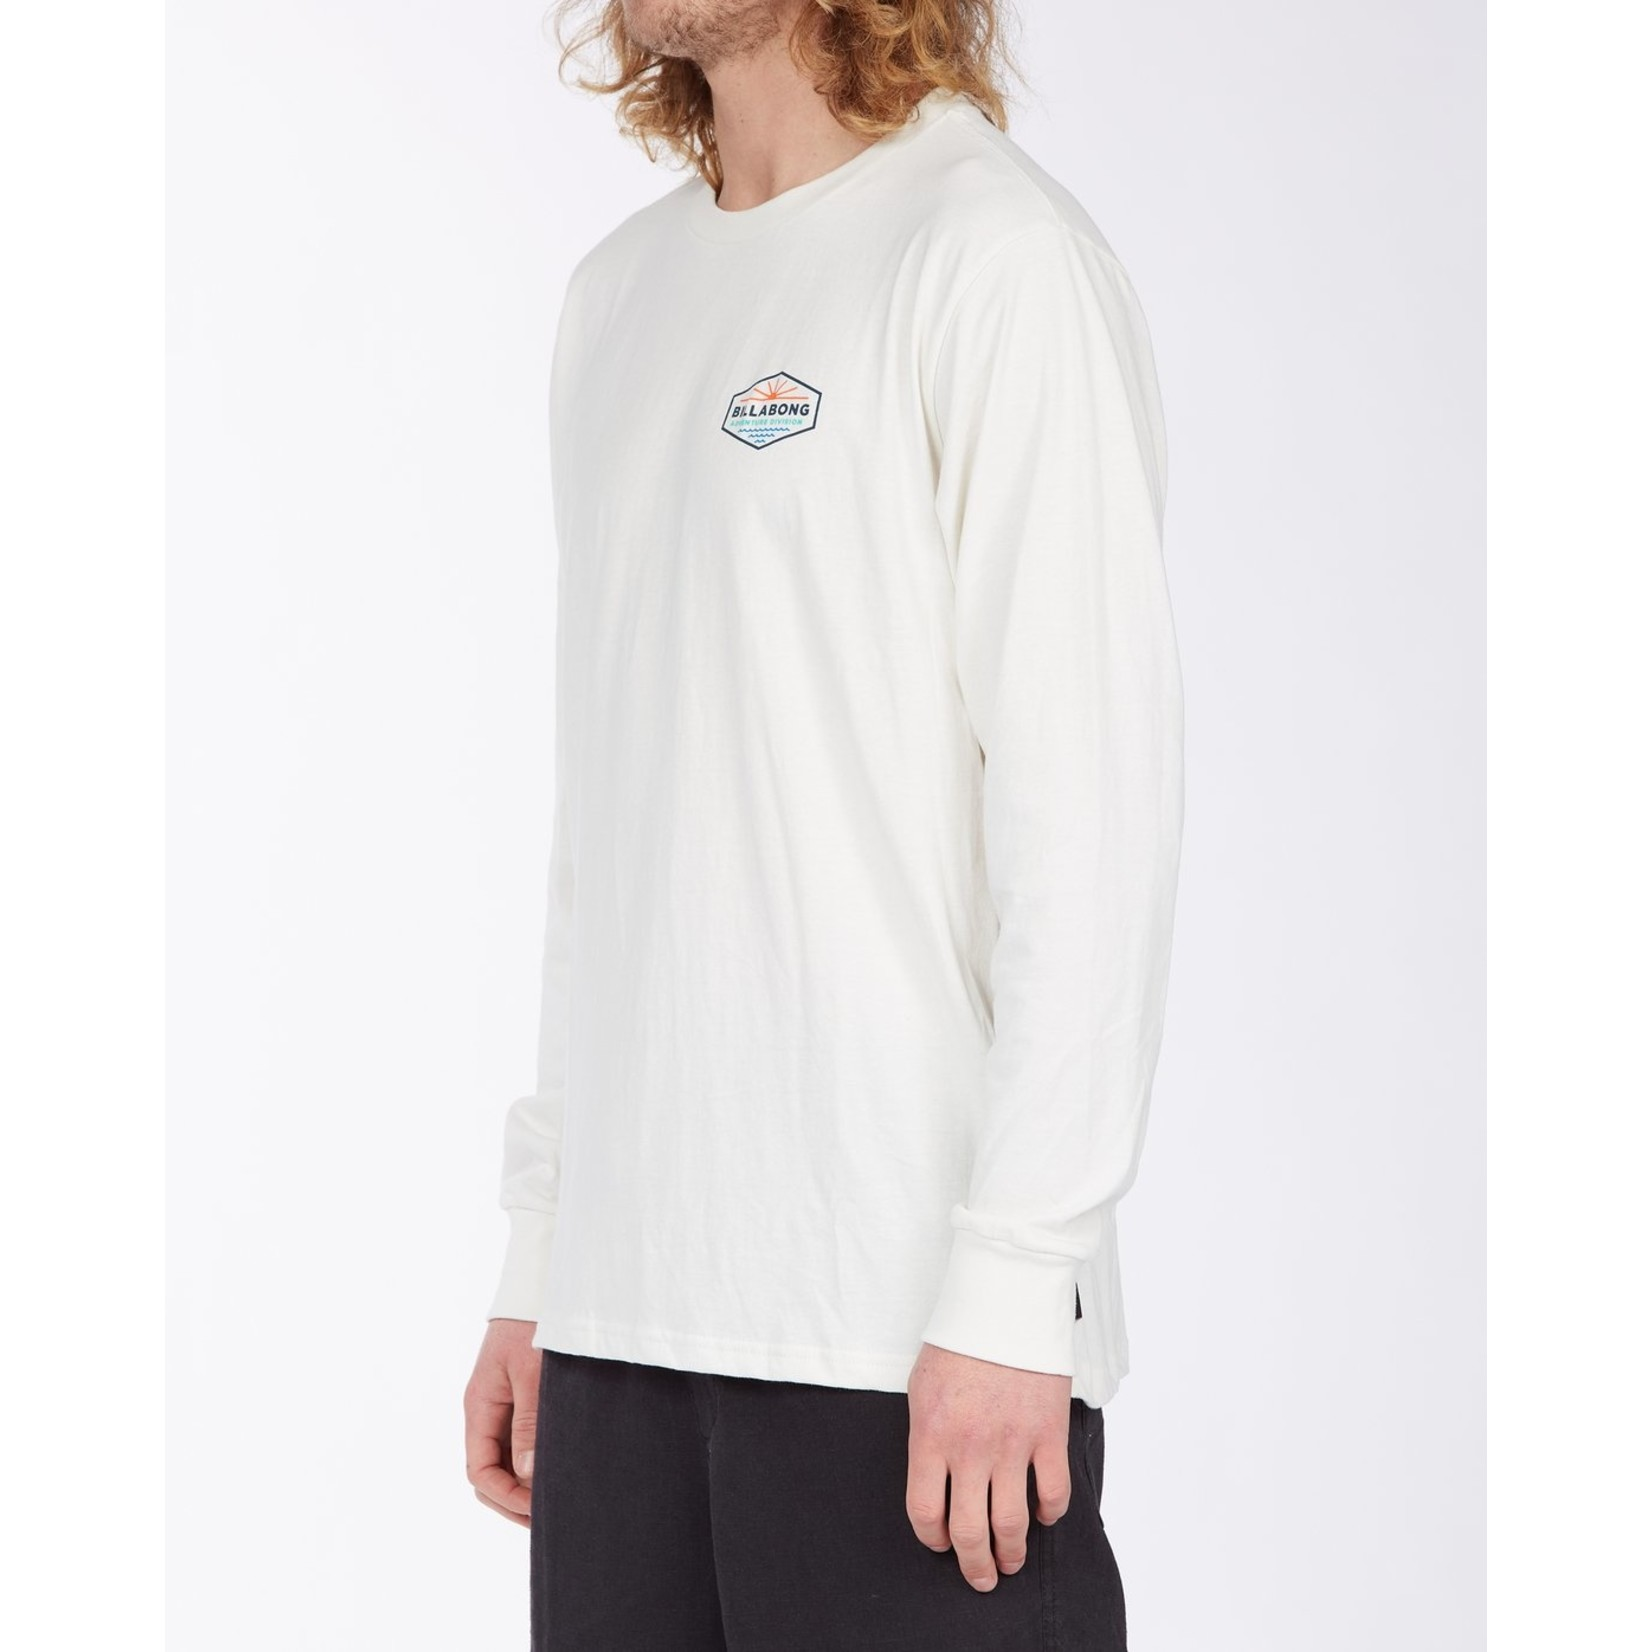 BILLABONG COVE LONGSLEEVE T-SHIRT